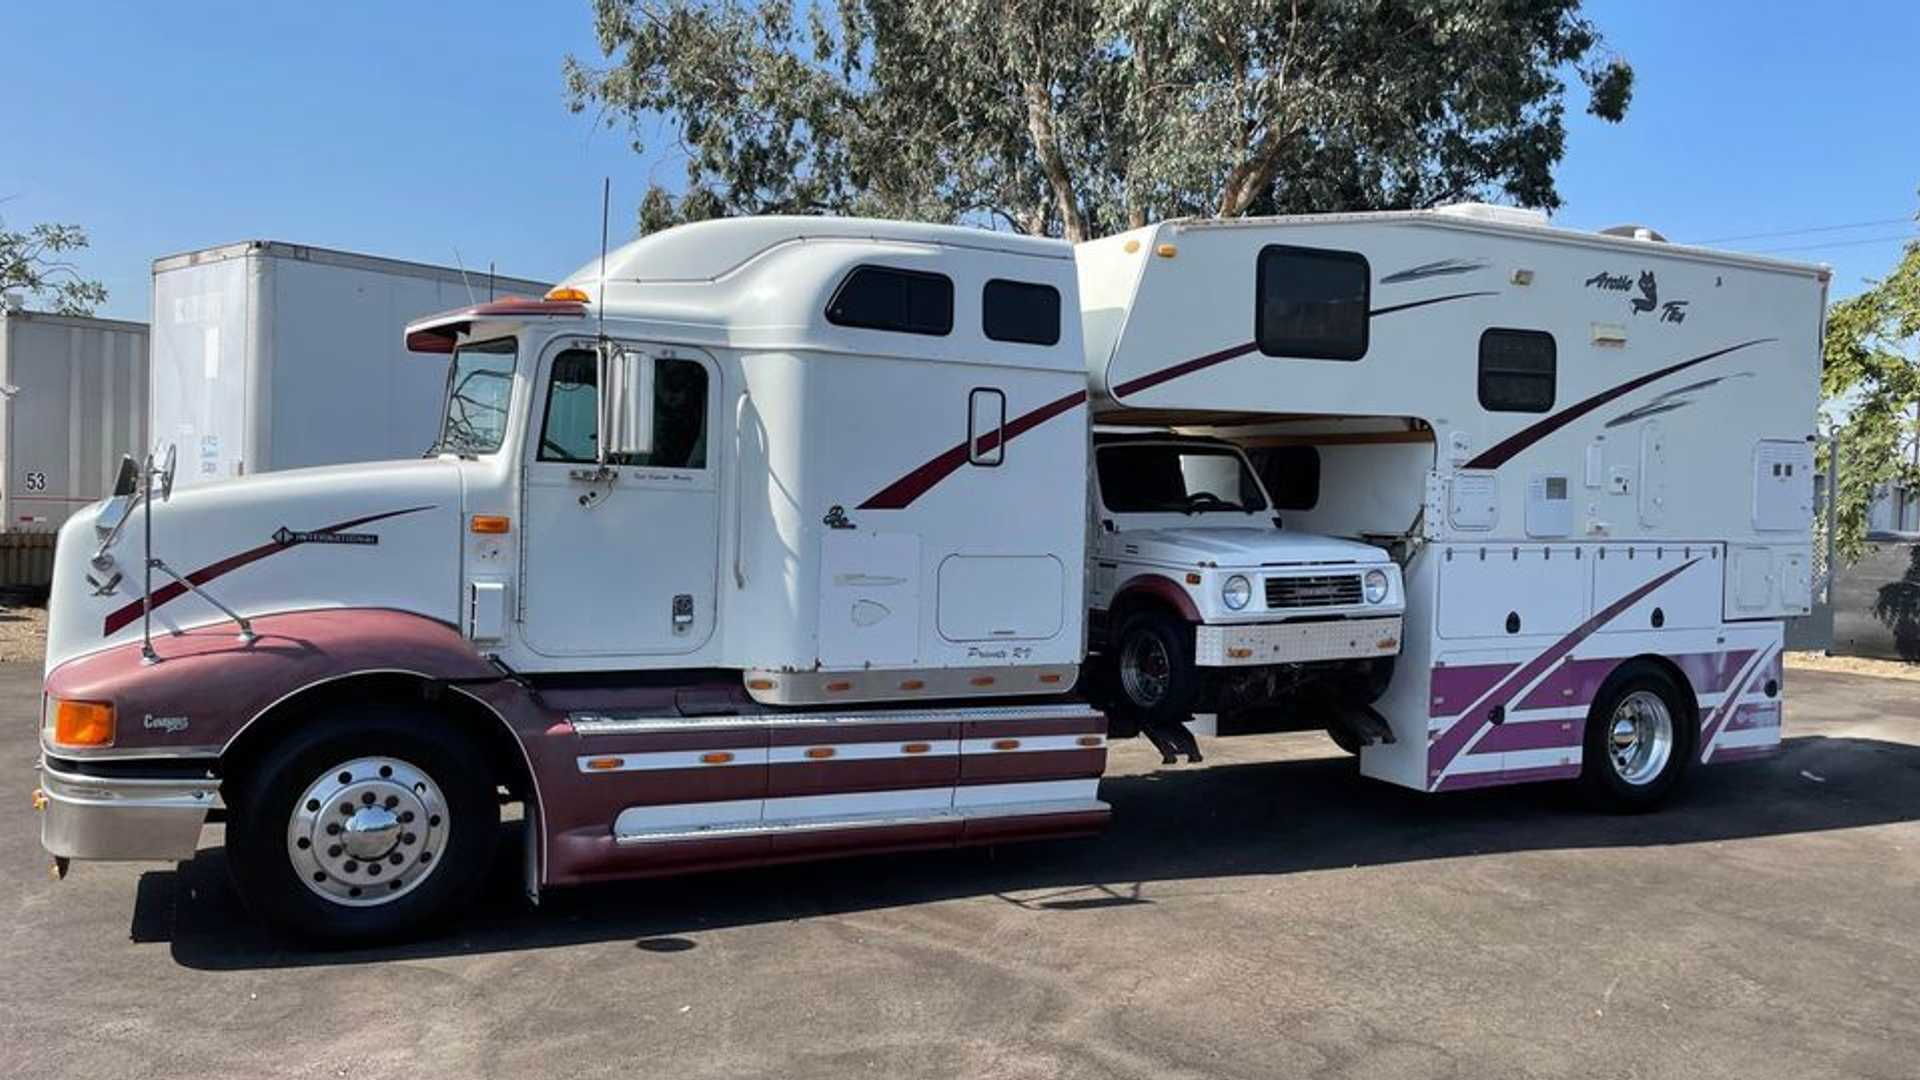 Custom RV Is Part Camper, Part Semi Truck, And It's For Sale